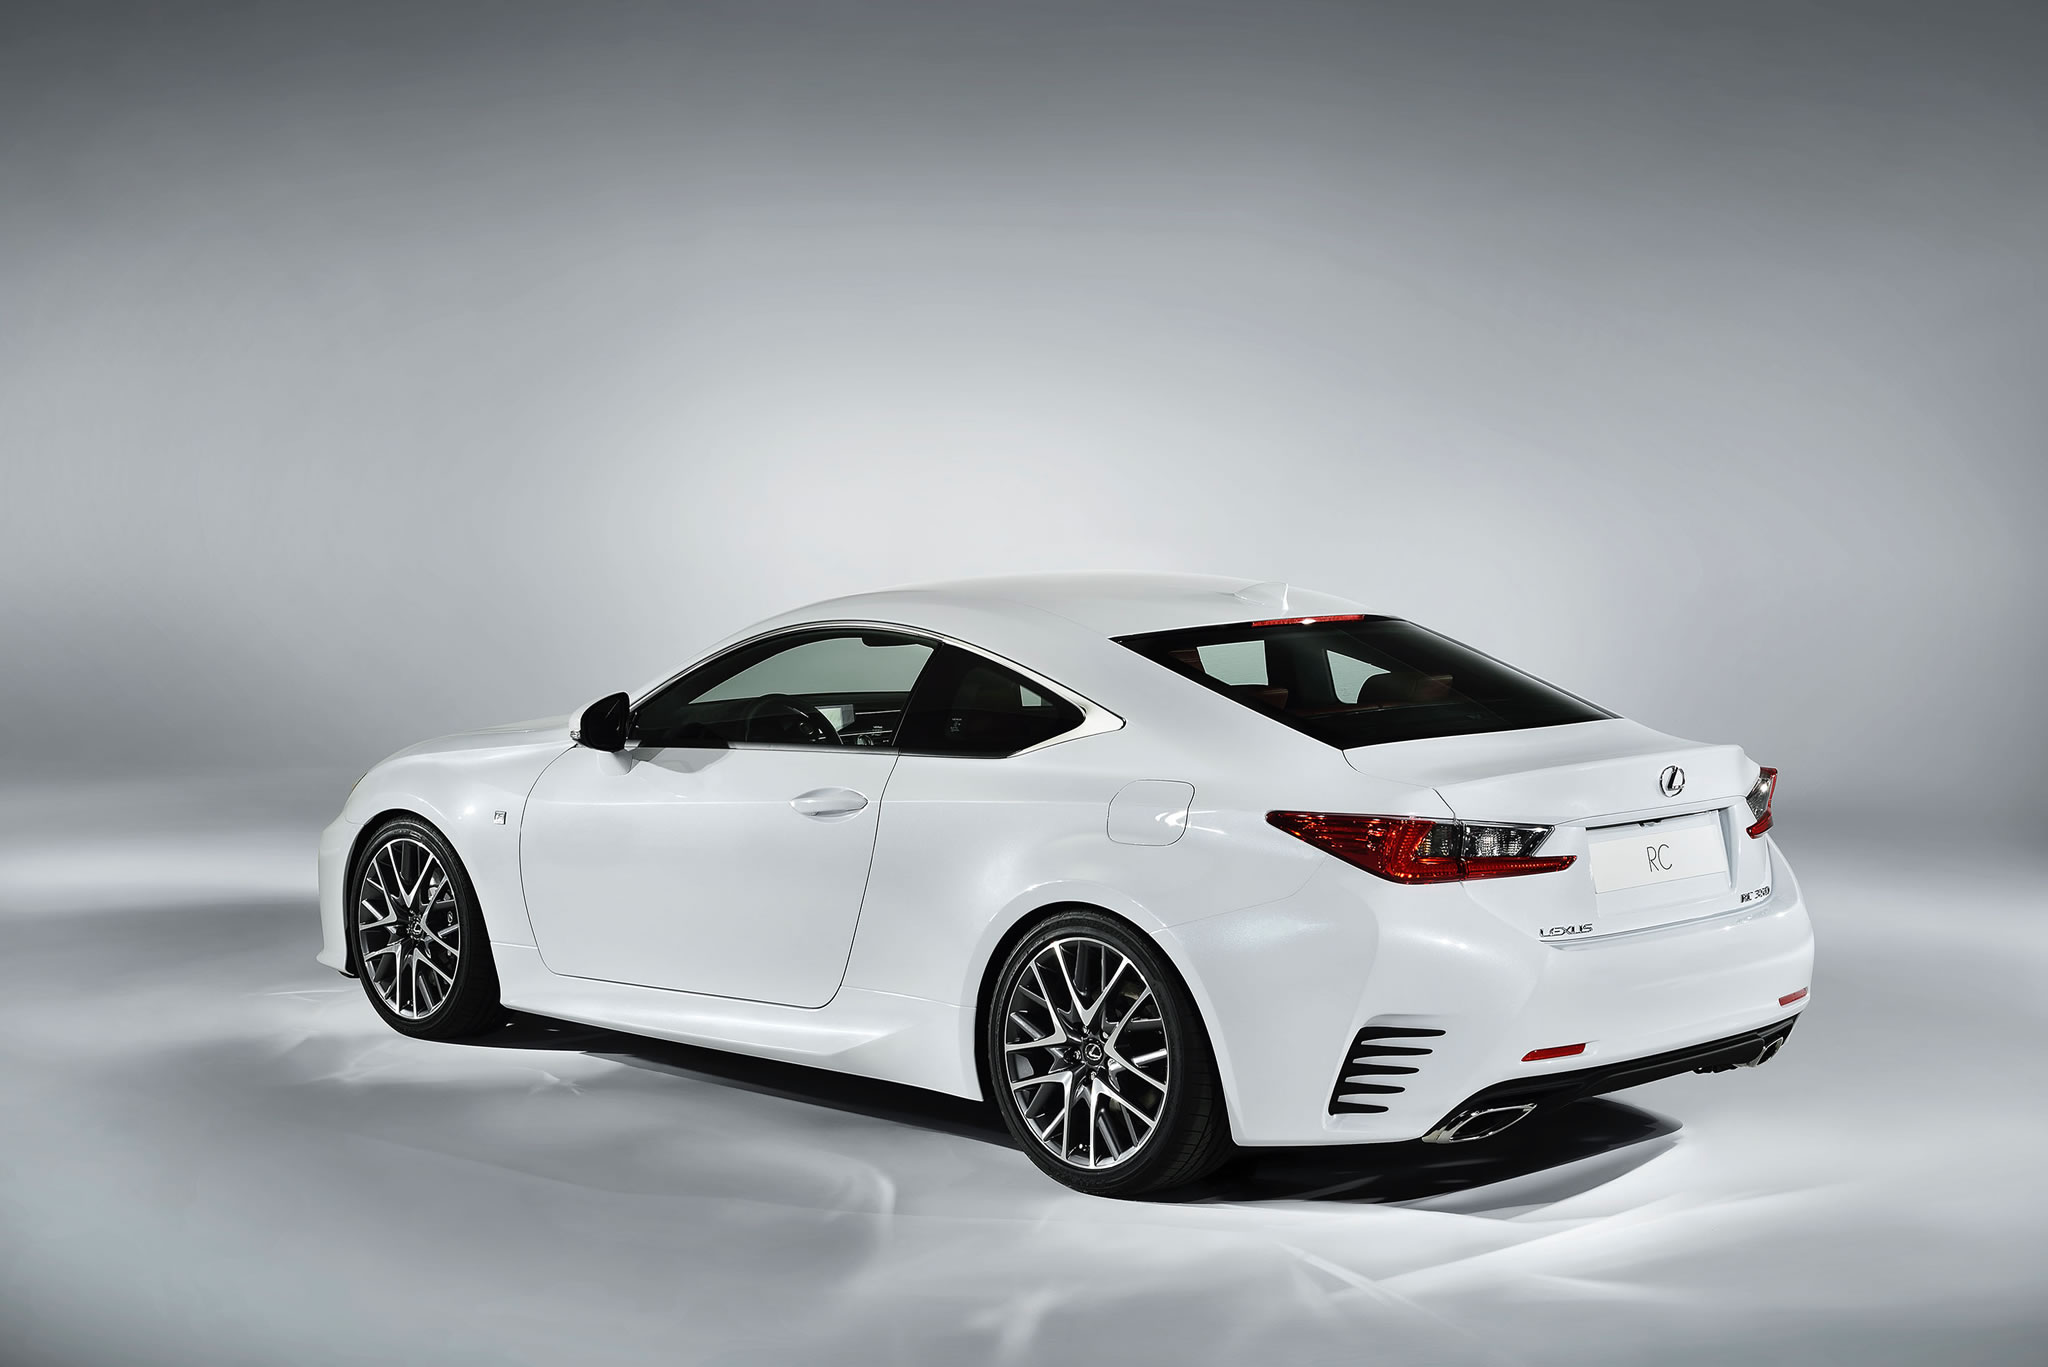 2015 Lexus RC 350 F Sport - rear photo, Ultra White color, size 2048 x 1367, nr. 7/17 ...